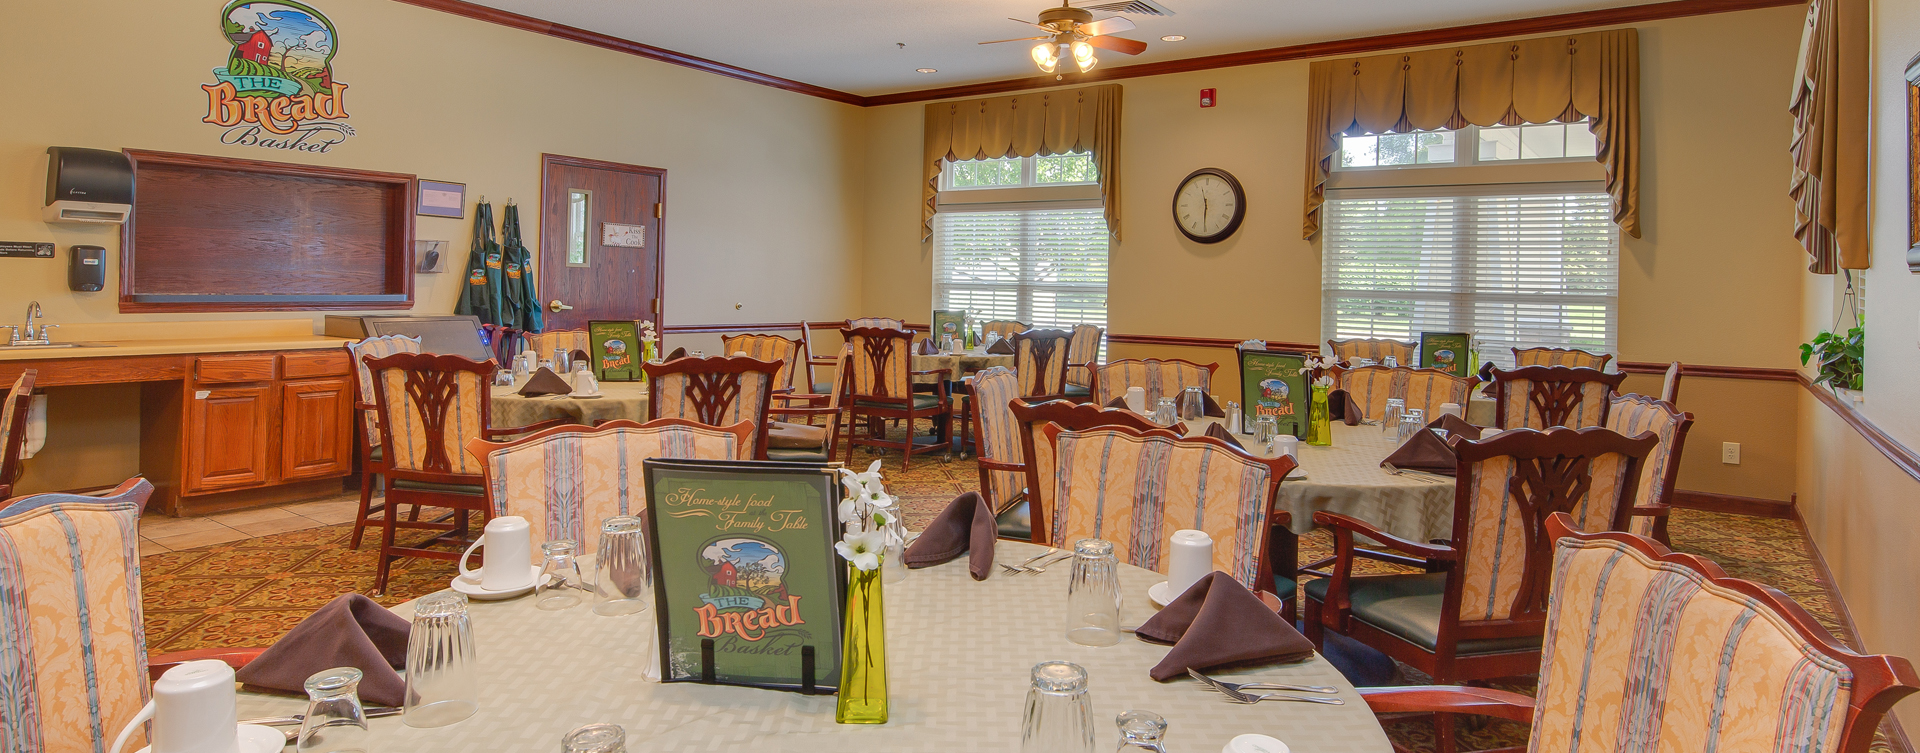 Food is best when shared with friends in the dining room at Bickford of Portage